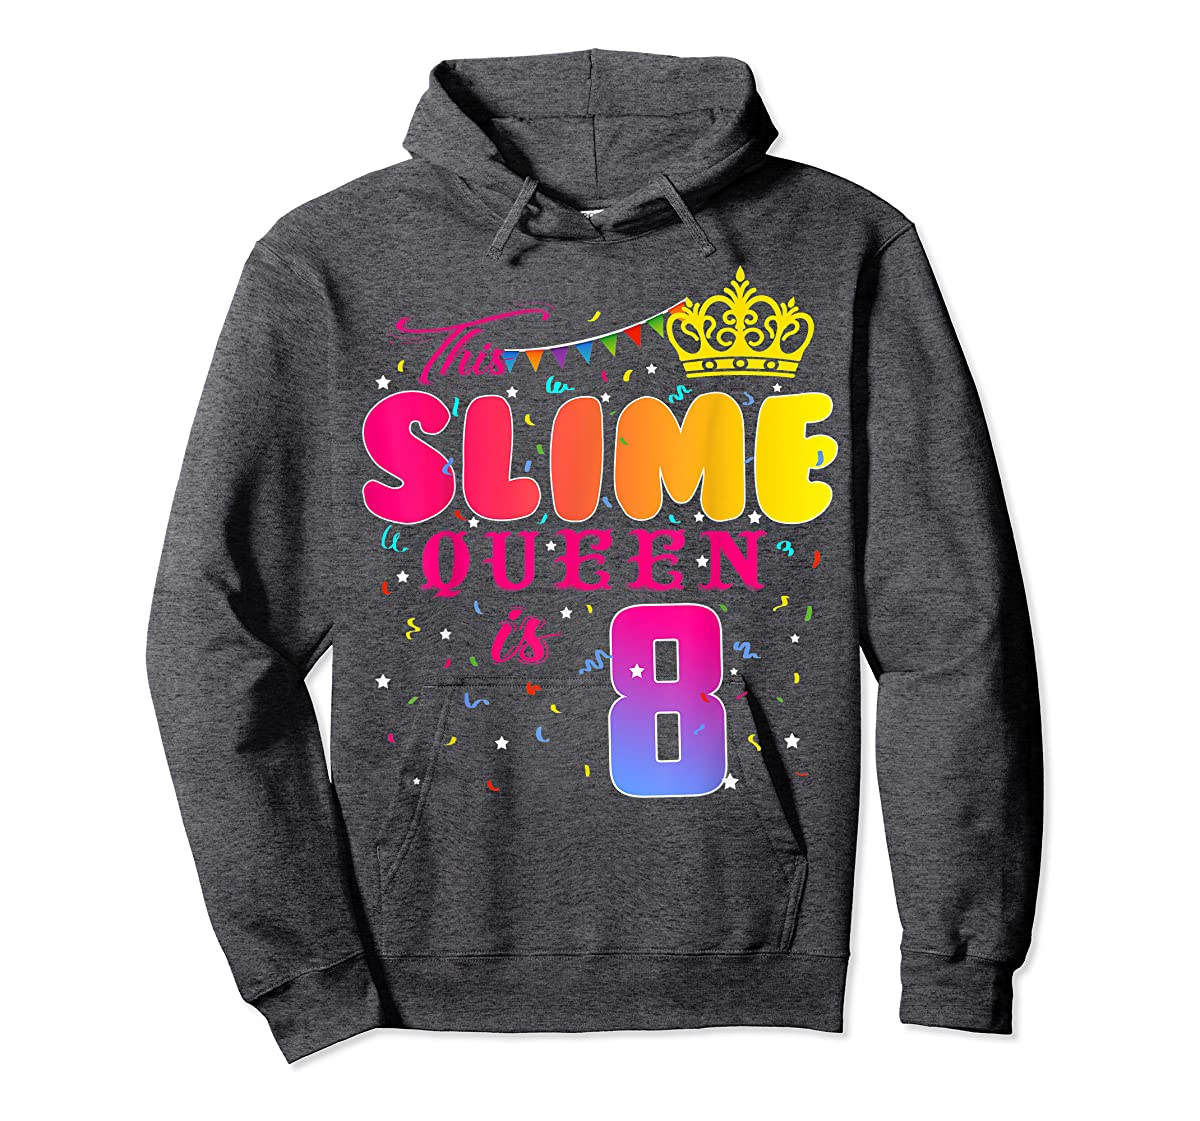 8 Years Old 8th Birthday Slime Queen Shirt Girl Gift Party-Hoodie-Dark Heather